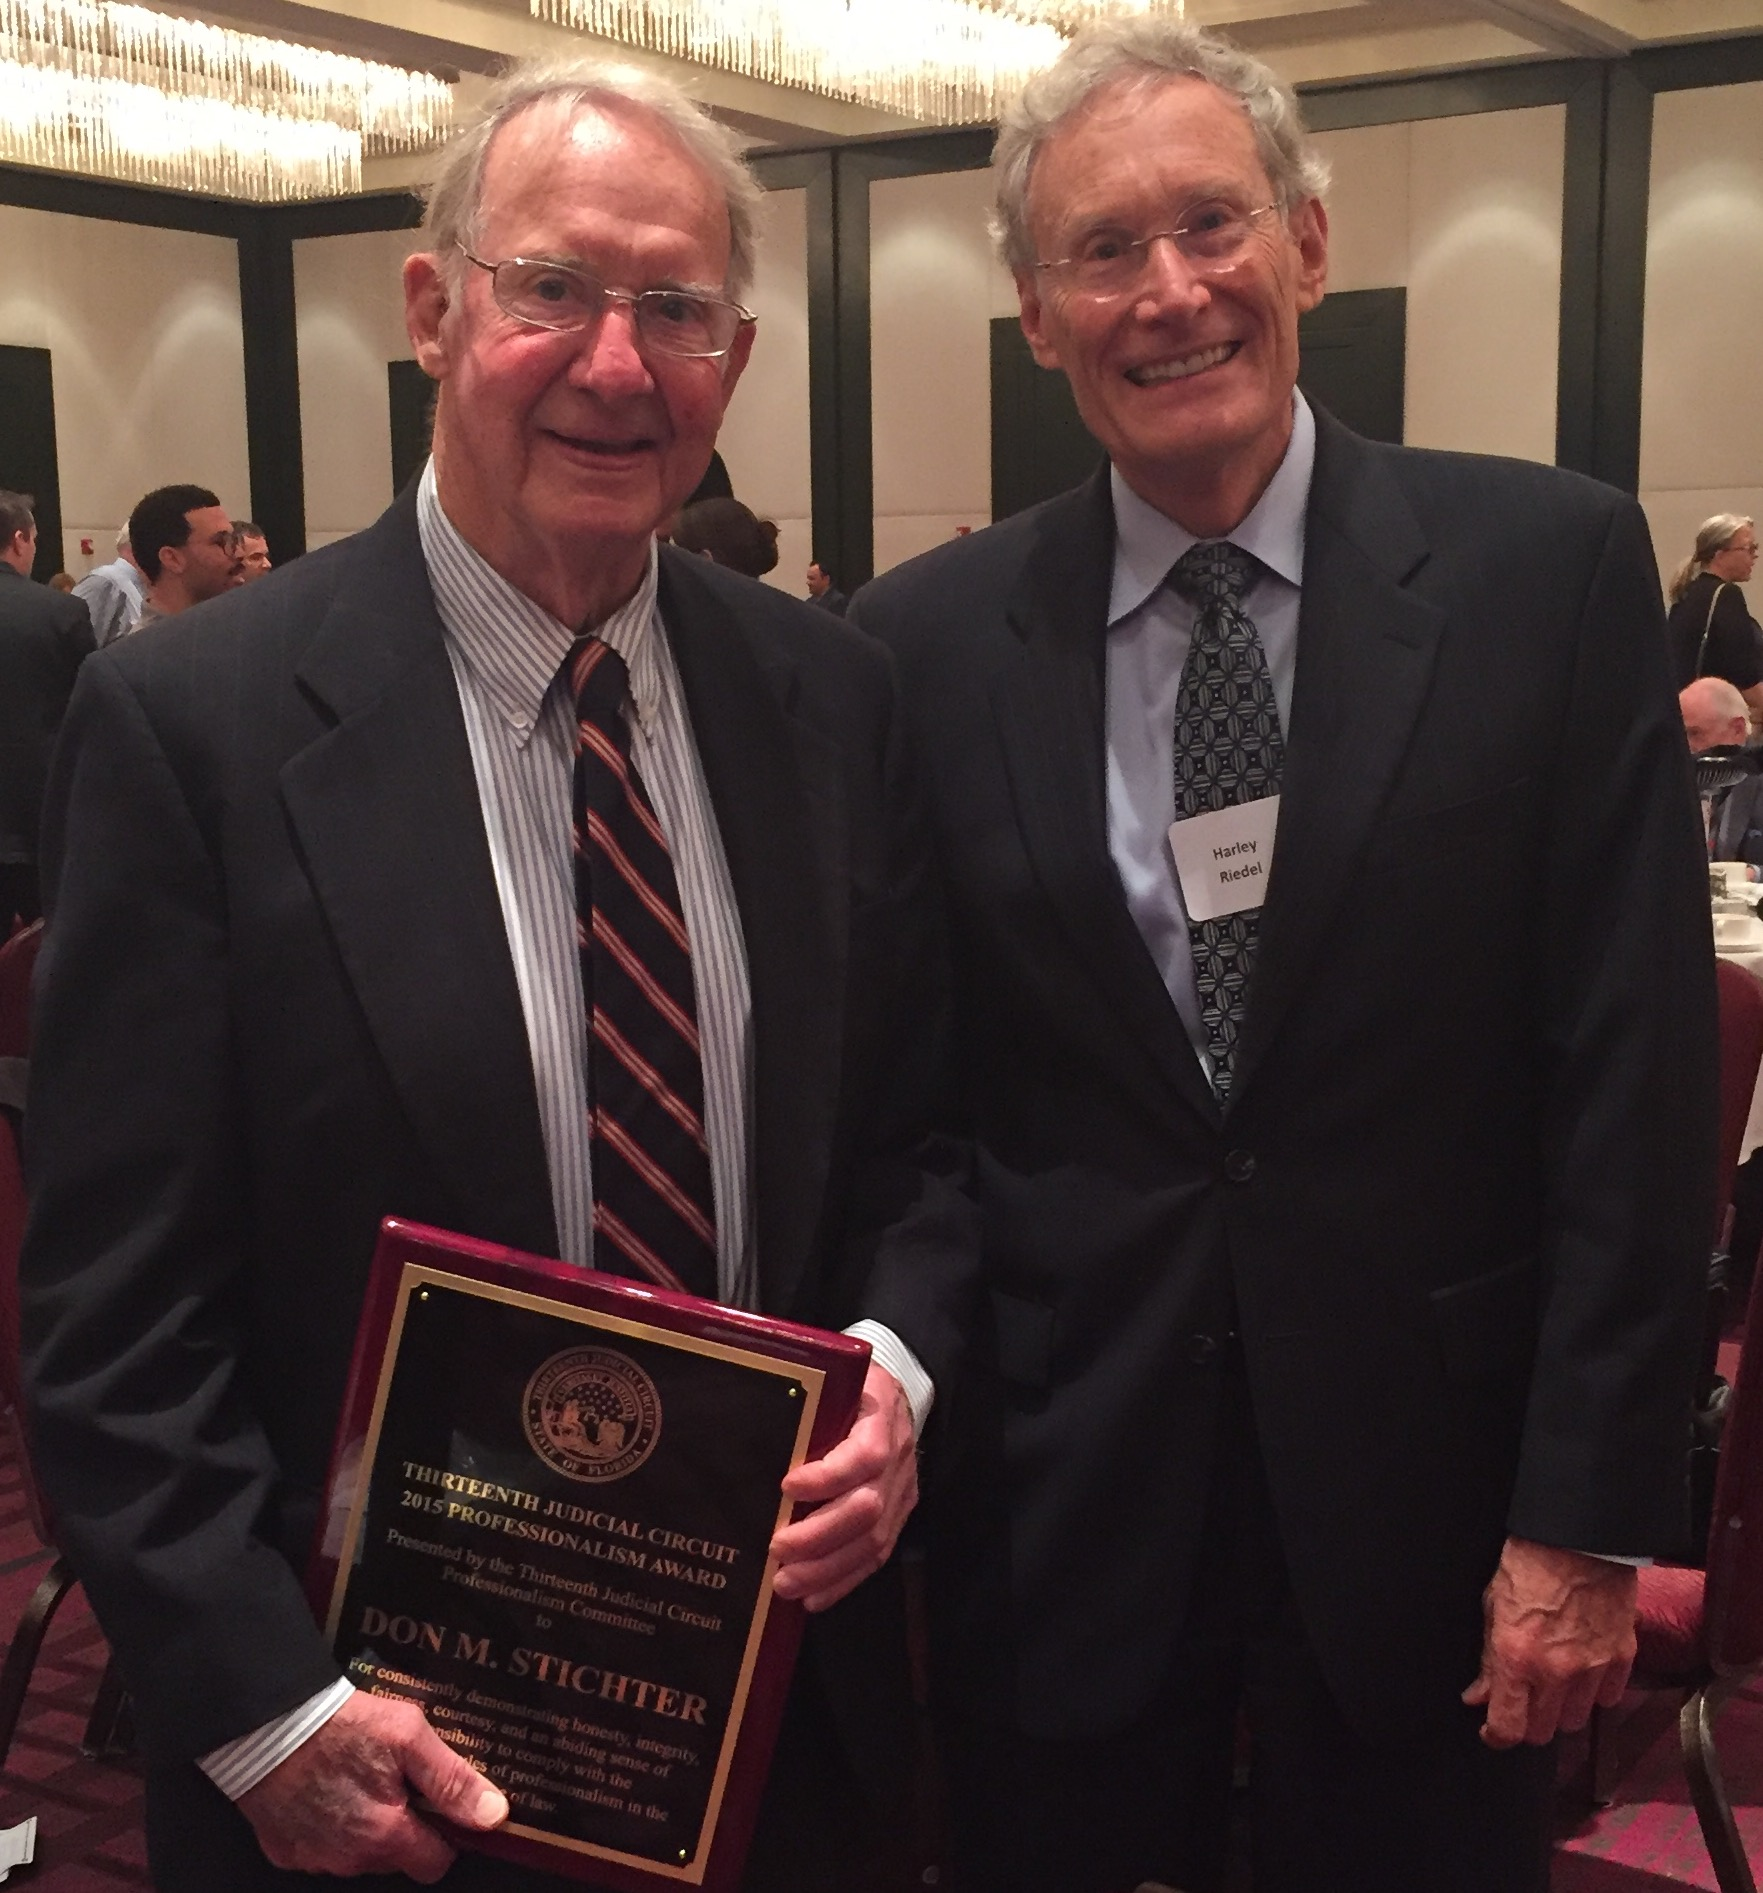 Don M. Stichter Awarded Thirteenth Judicial Circuit 2015 Professionalism Award - October 27, 2015